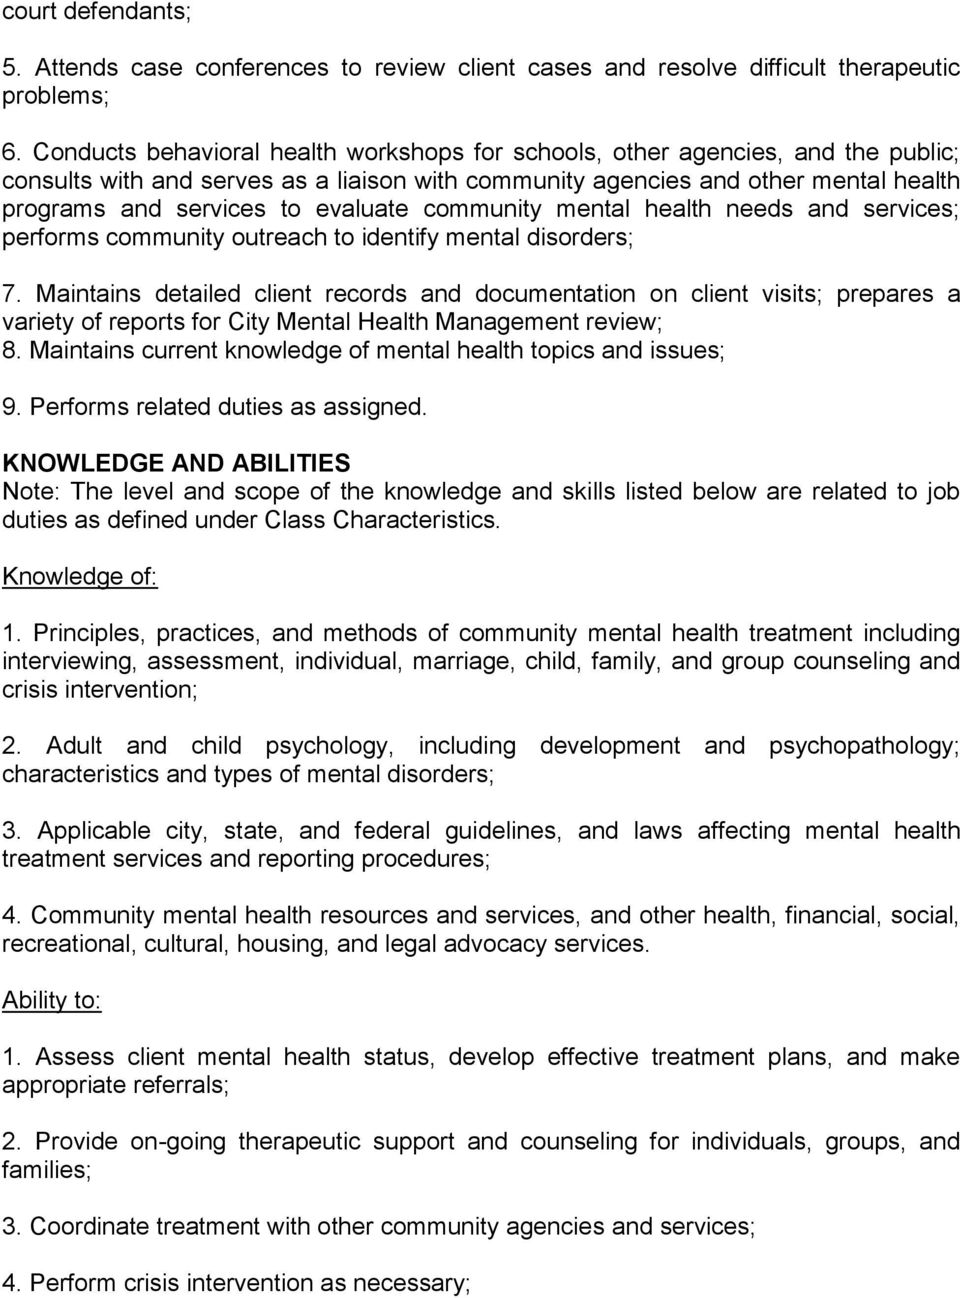 evaluate community mental health needs and services; performs community outreach to identify mental disorders; 7.